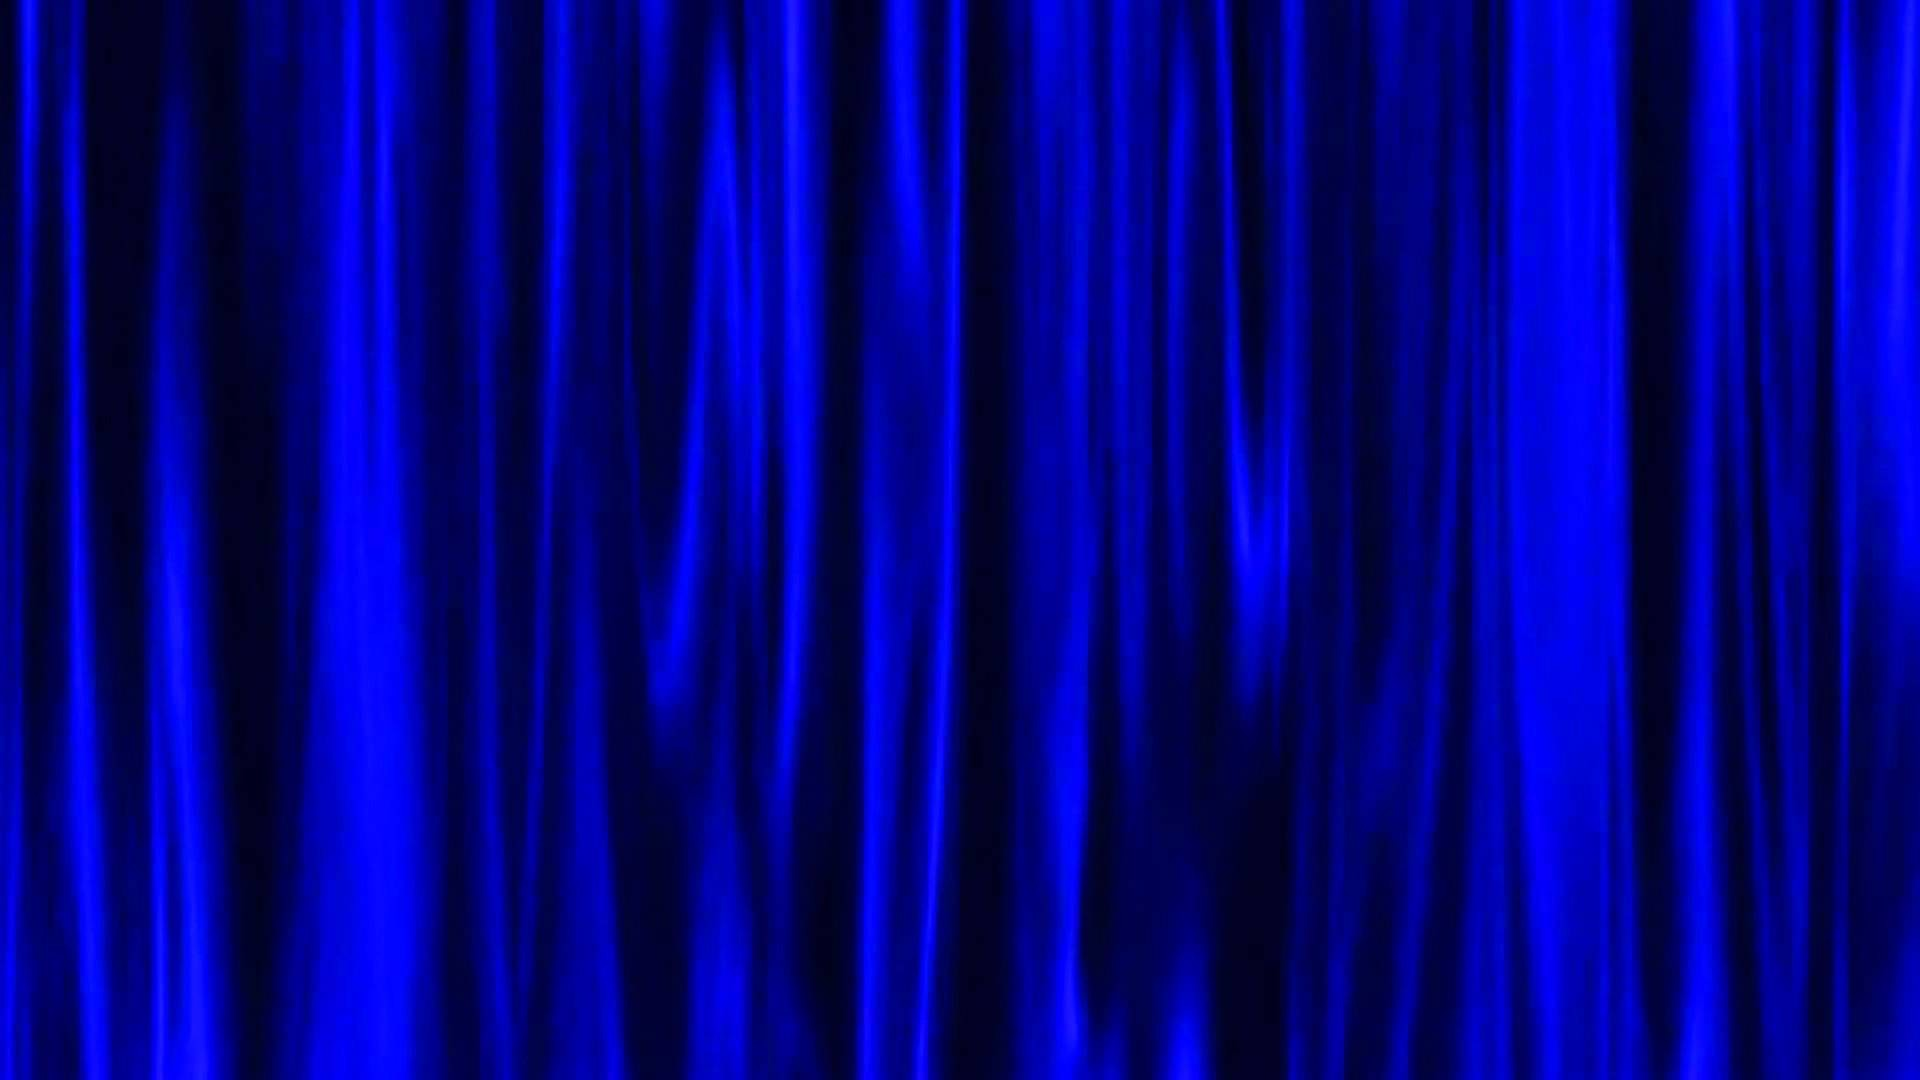 Royal Blue Background 183 '� Download Free Hd Wallpapers For